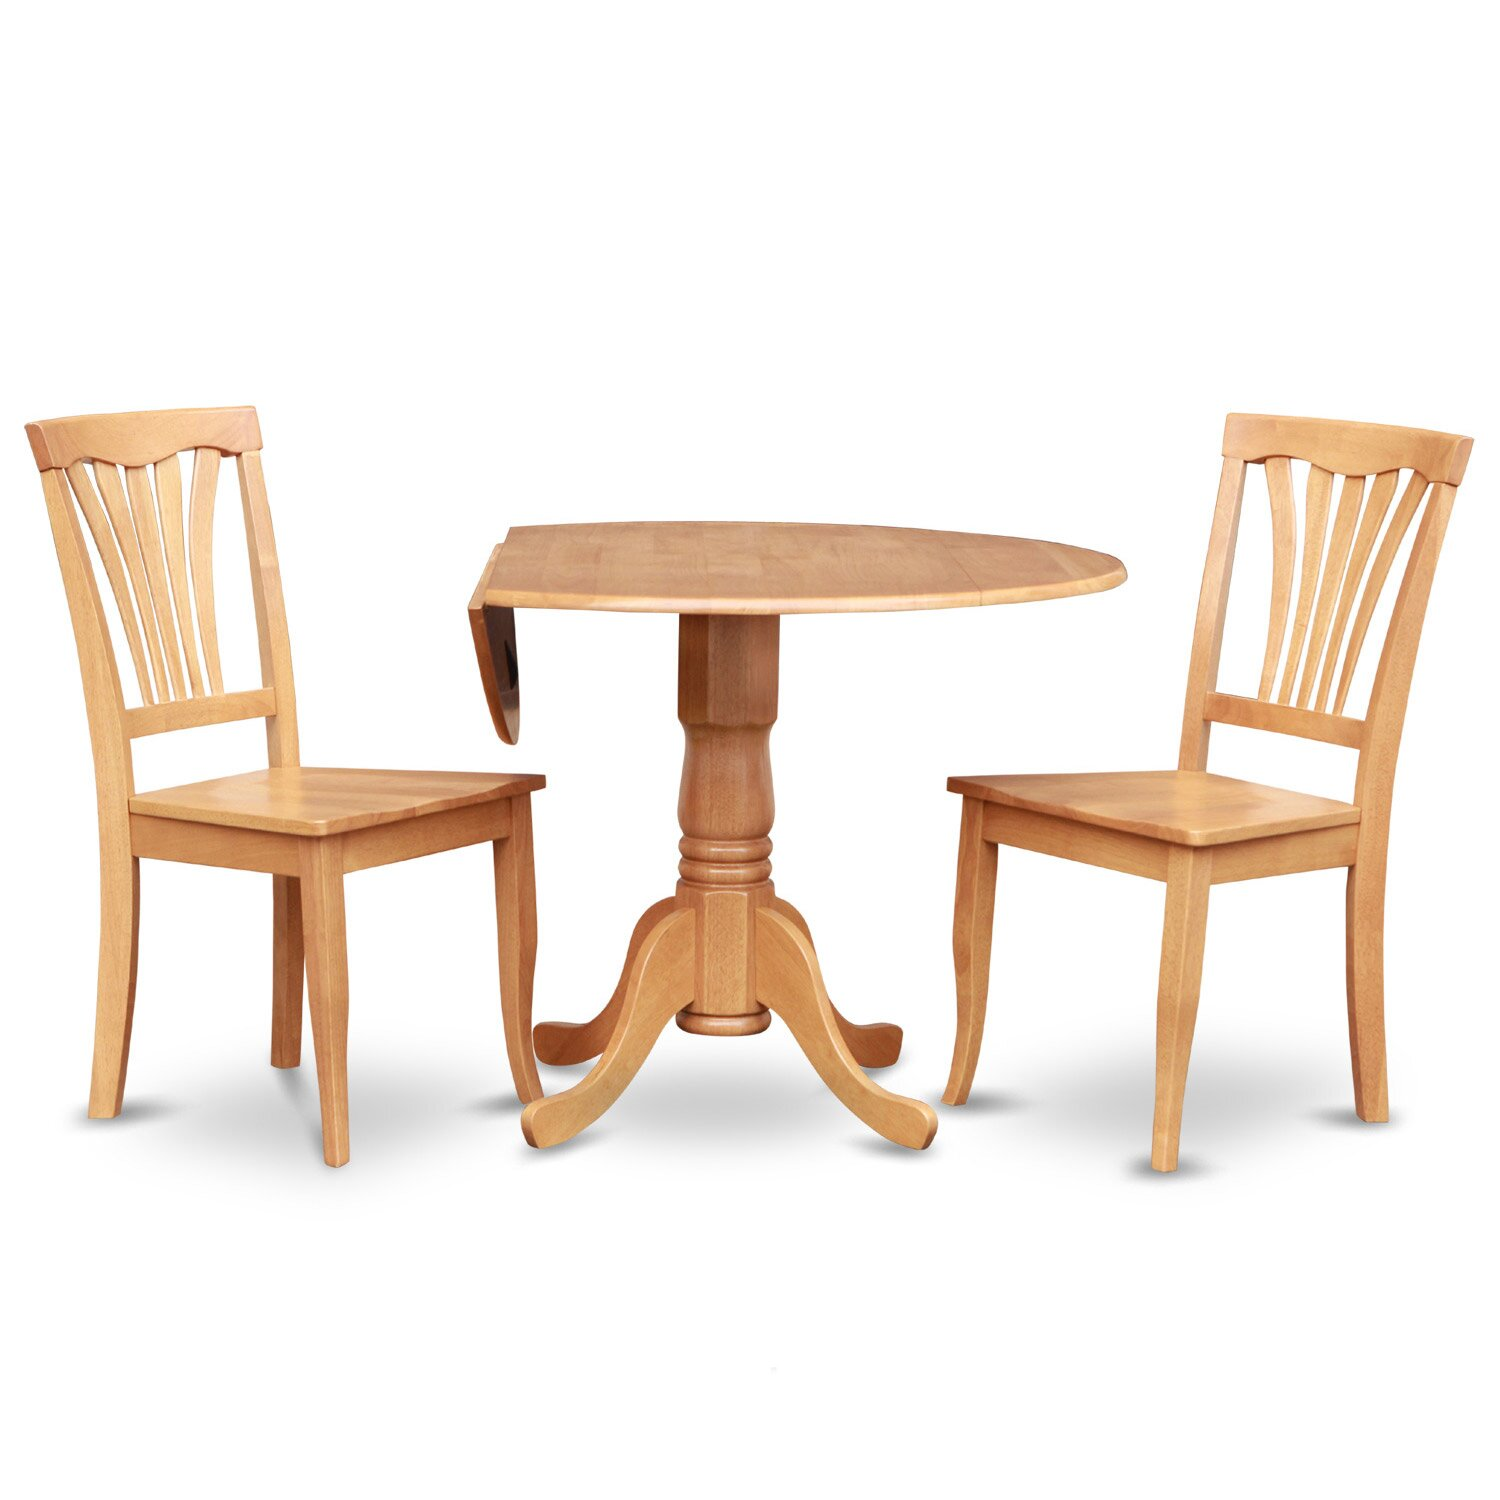 Wooden importers dublin 3 piece dining set reviews wayfair for Kitchen table with stools